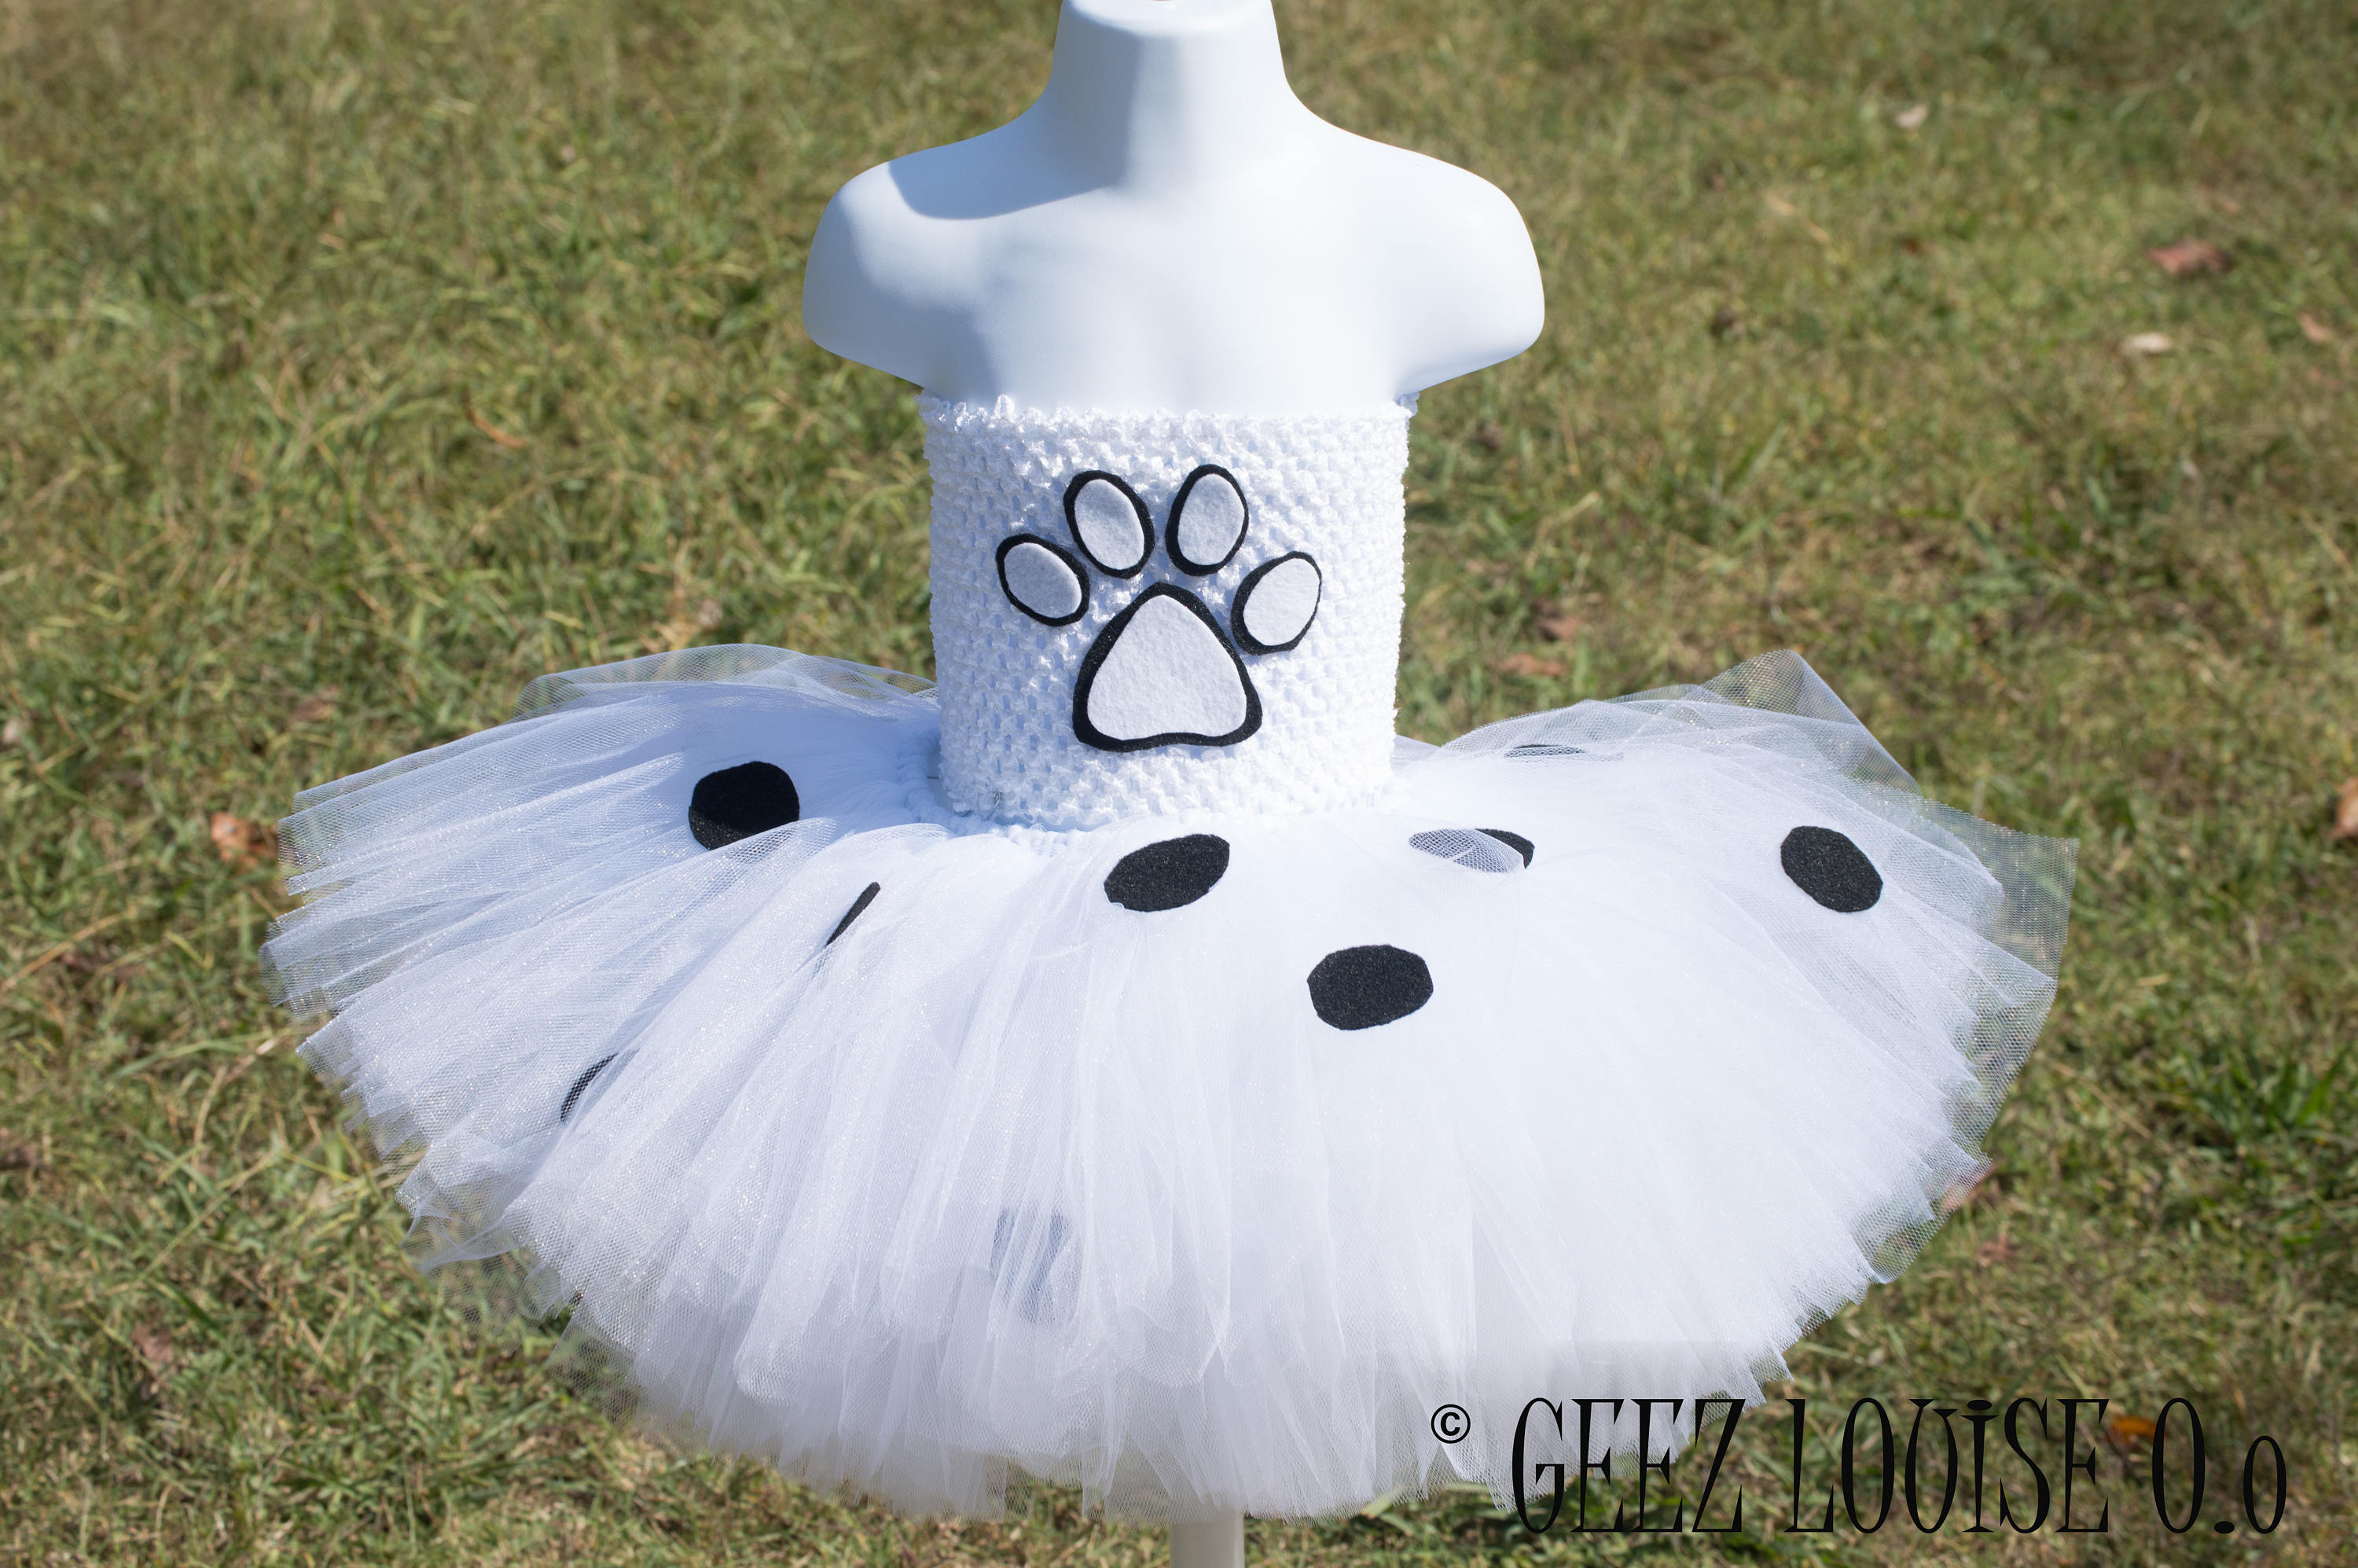 Dalmatian puppy Halloween Costume Tutu Girl Skirt Boutique Bows Clothing Baby Toddler White Black Dog Spots Outfit & Dalmatian puppy Halloween Costume Tutu Girl Skirt Boutique Bows ...